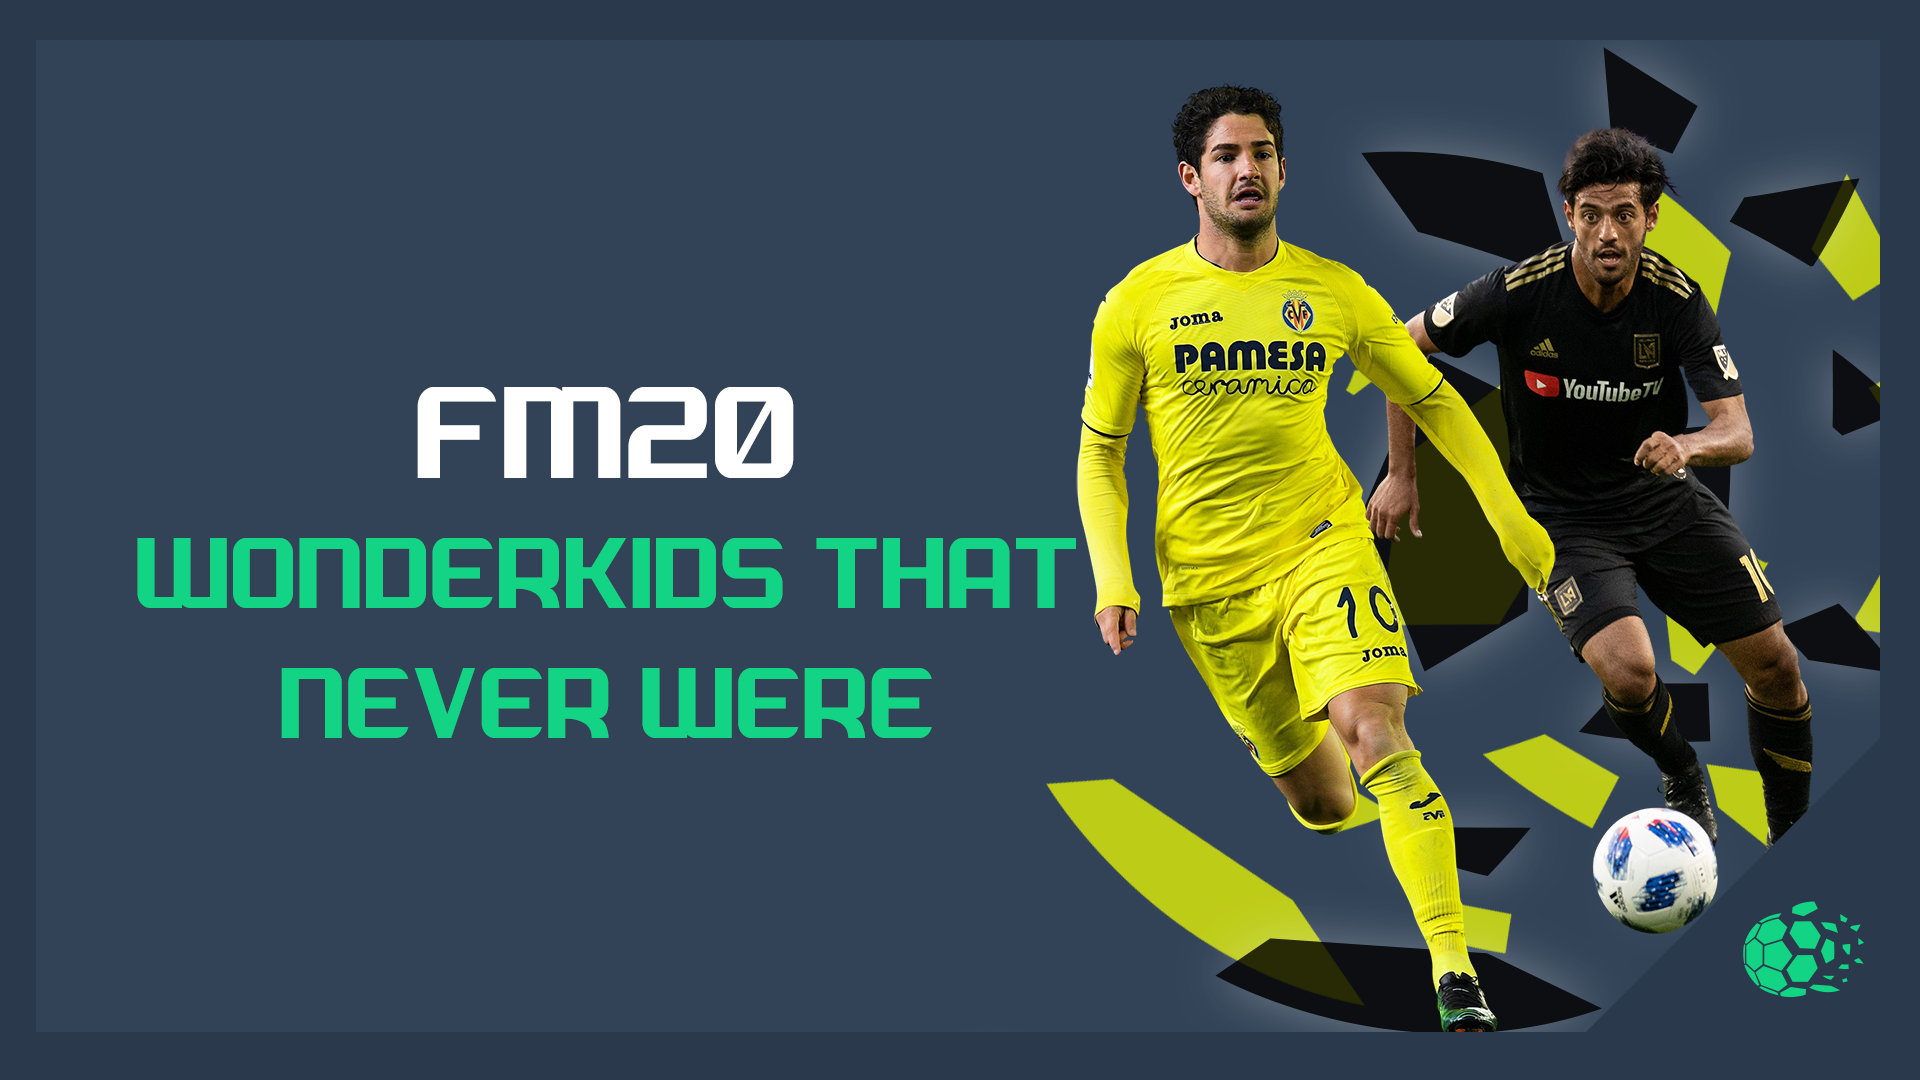 """""""FM20Football Manager: The Wonderkids That Never Were"""" feature image"""